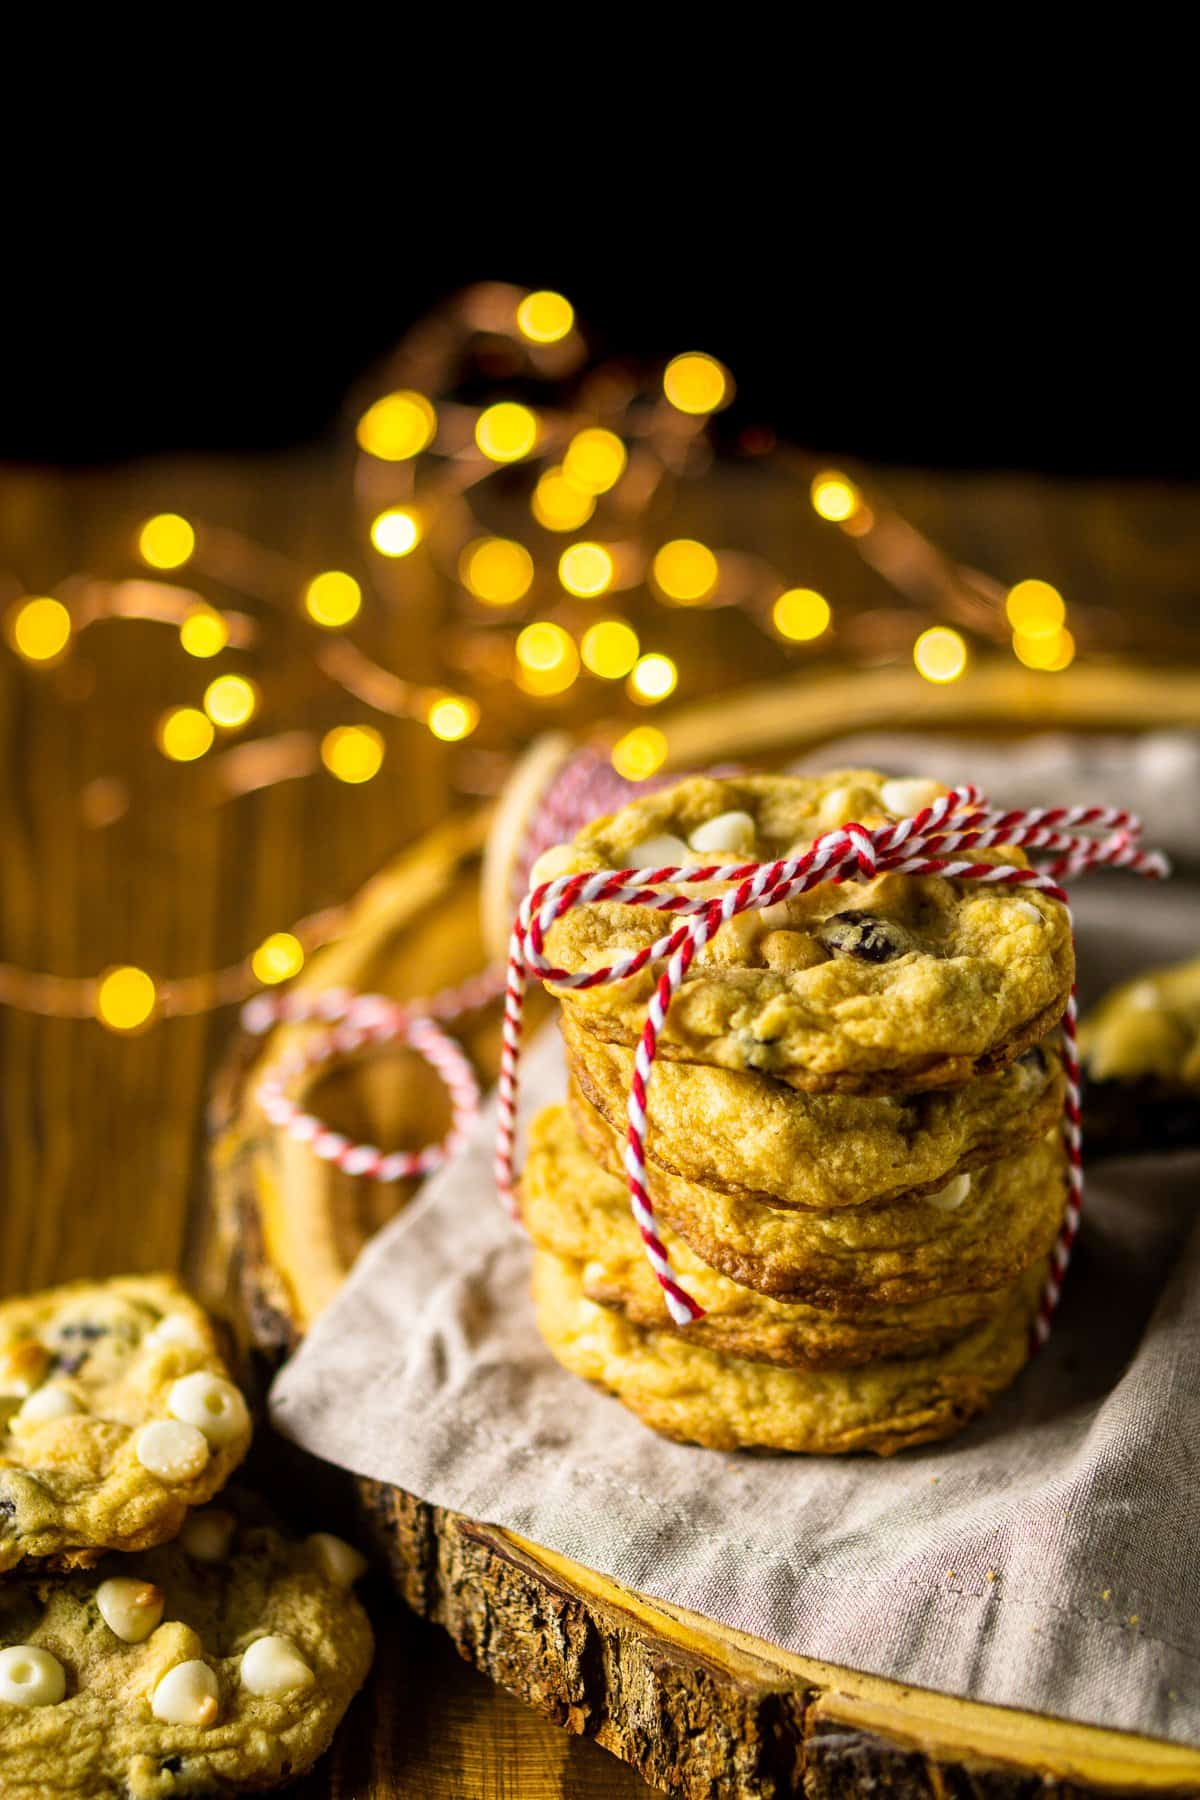 Looking down on a stack of cranberry-orange cookies with white chocolate chips on a wooden serving board with lights behind it.